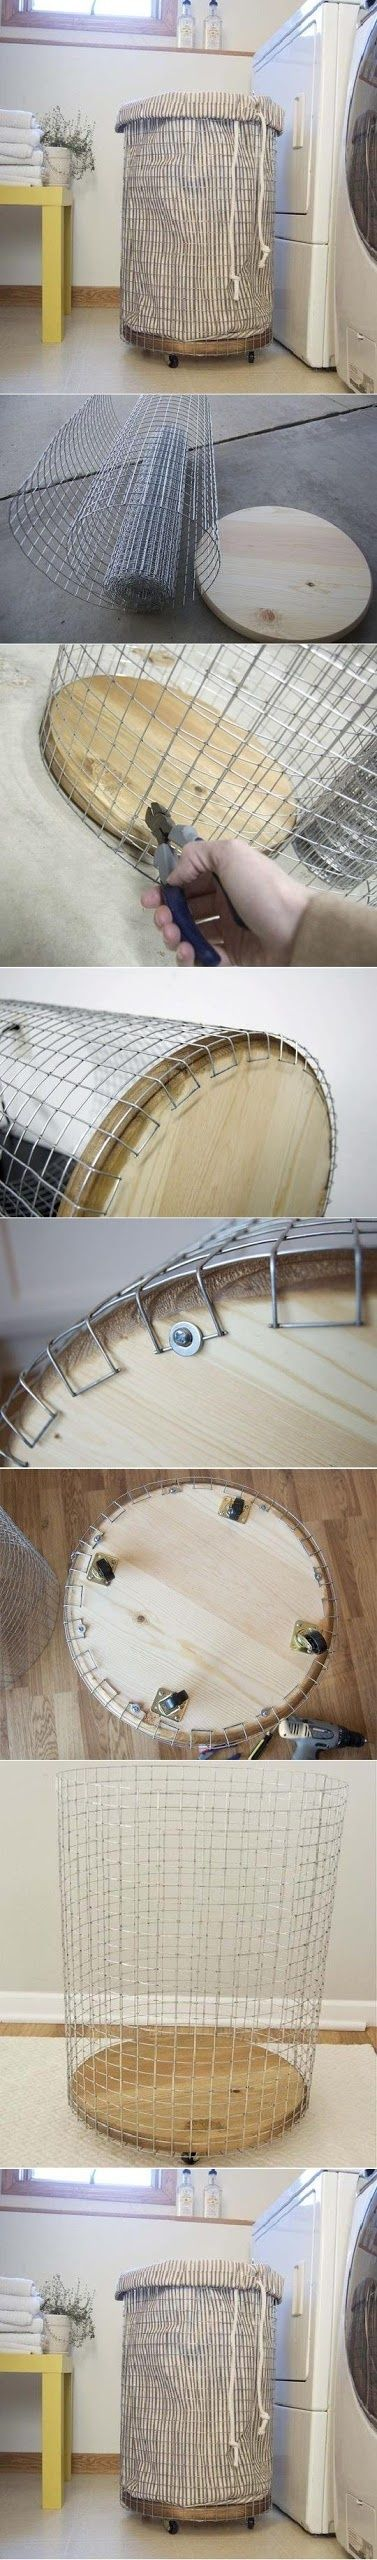 How to make a French-Vintage-Inspired Wire Hamper